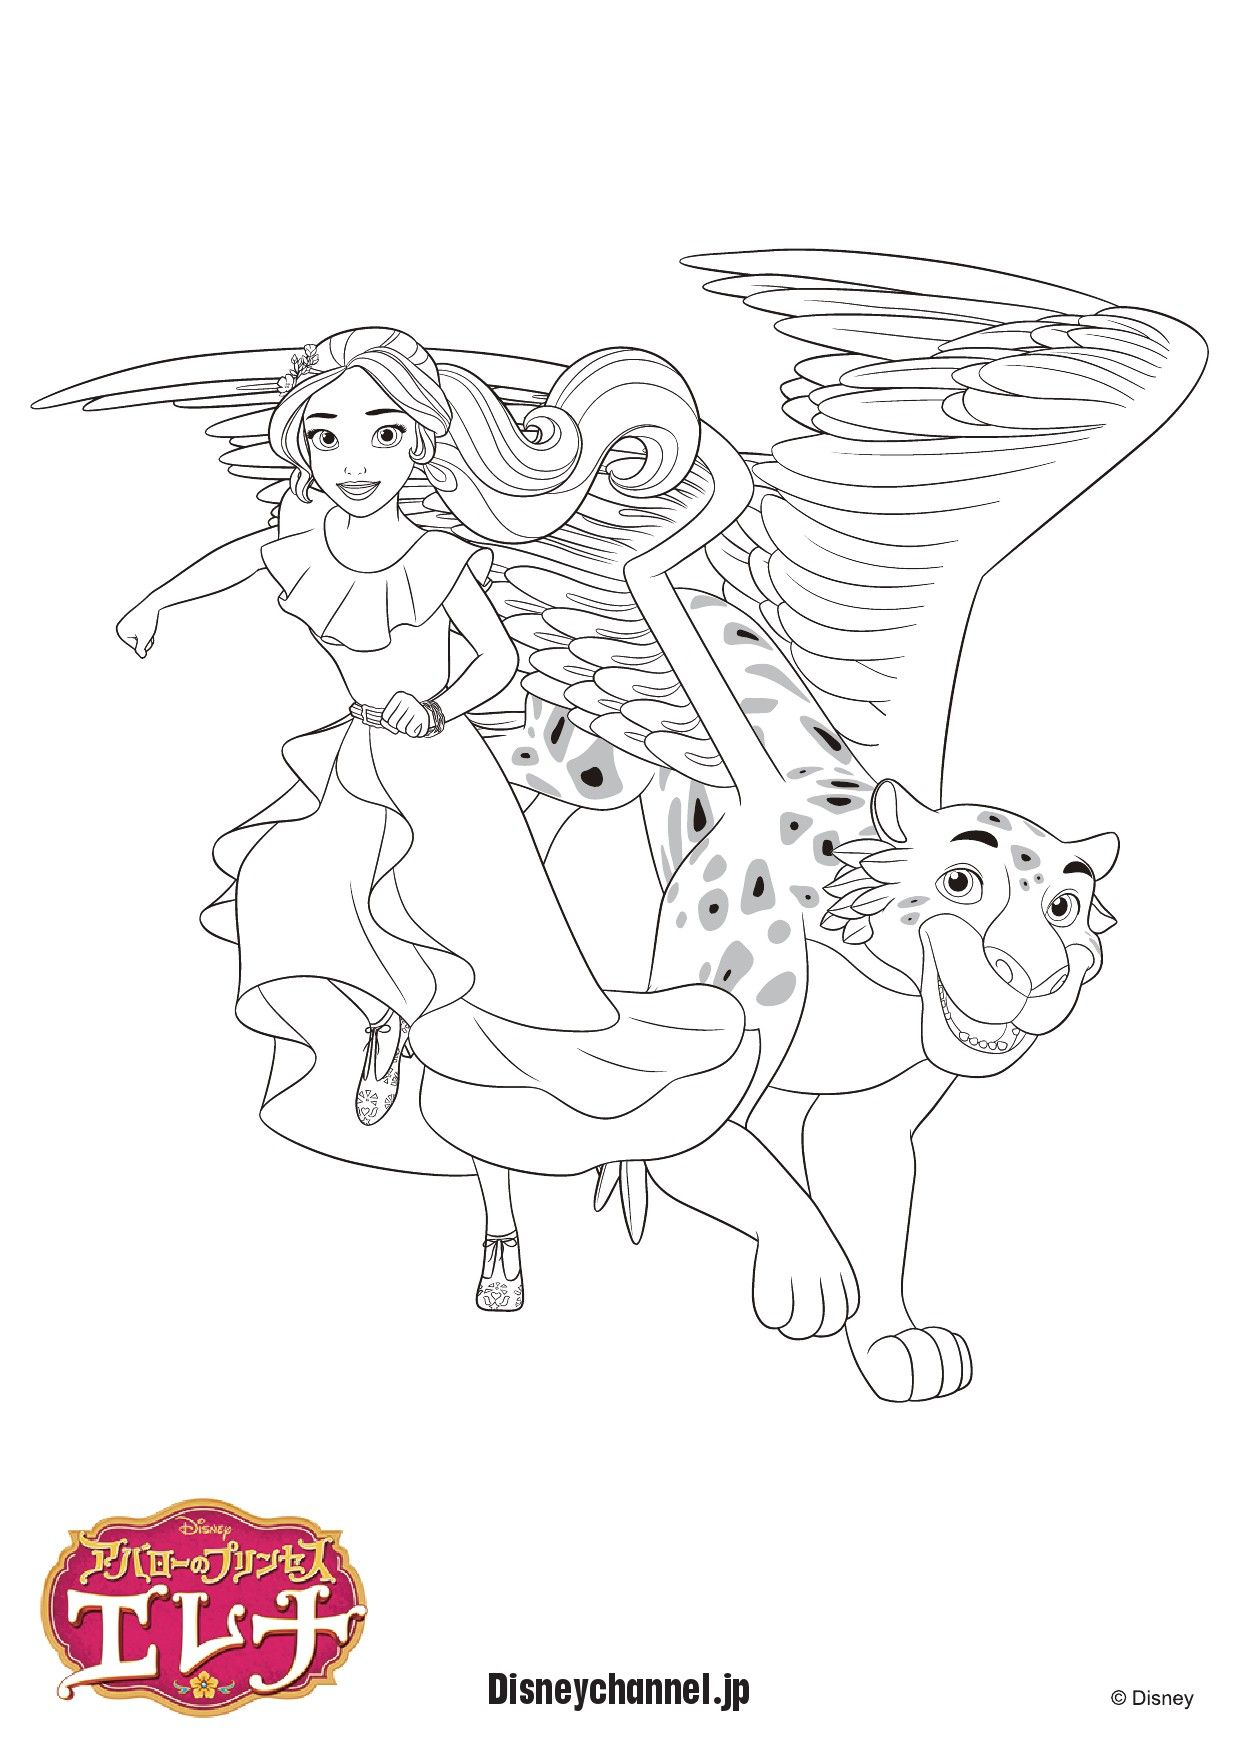 Coloring pages elena of avalor - Popup Naver Image Popup Popup Naver Image Popup Disney Elena Of Avalor Coloring Page